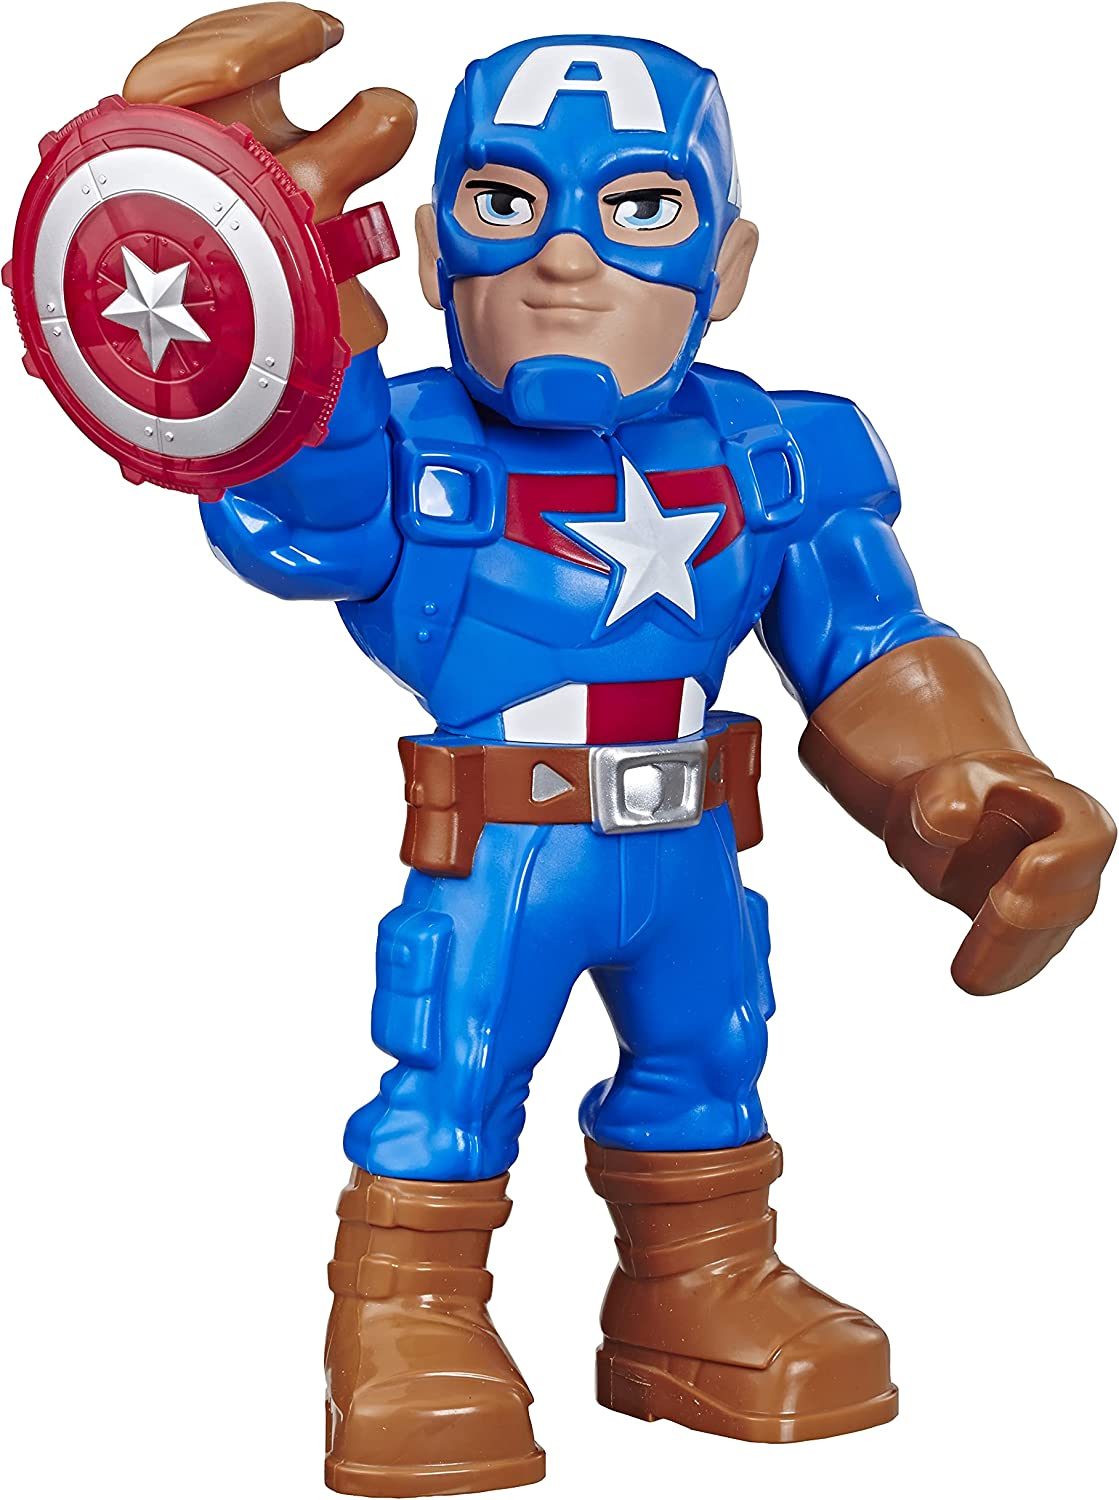 Playskool Heroes Mega Mighties Marvel Super Hero Adventures Captain America, Collectible 10-Inch Action Figure, Toys for Kids Ages 3 and Up